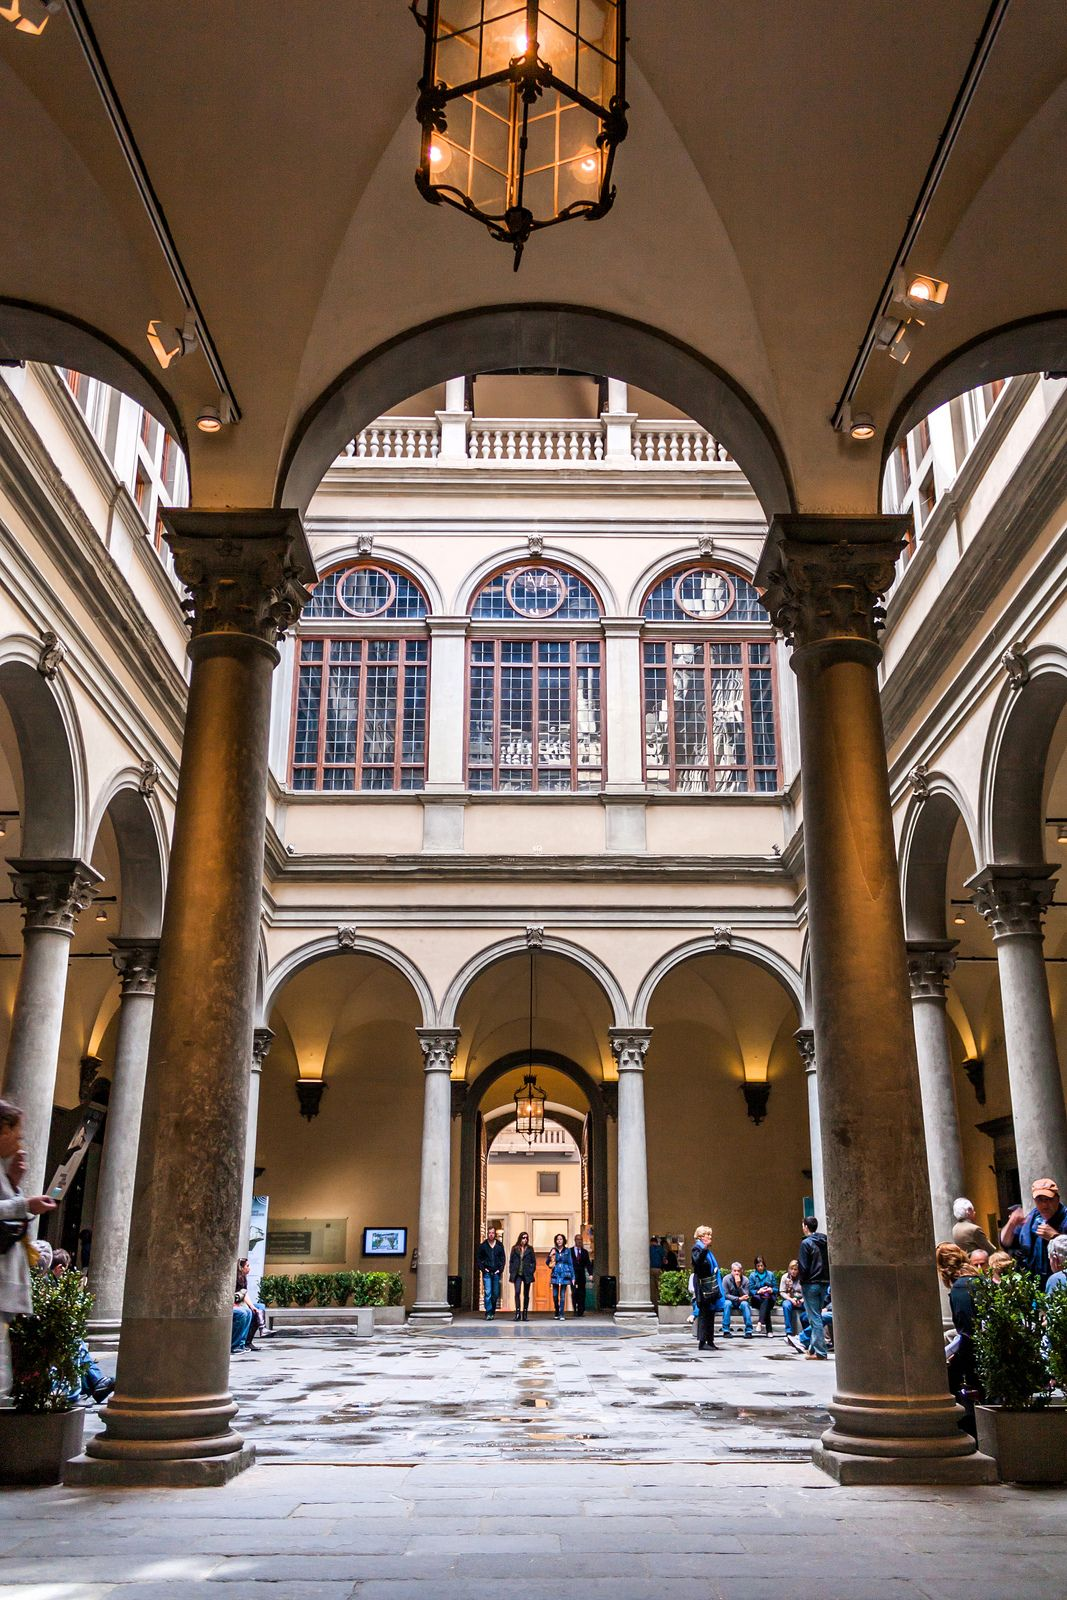 INNER COURTYARD Cortile. Palazzo Strozzi, Florence, Italy